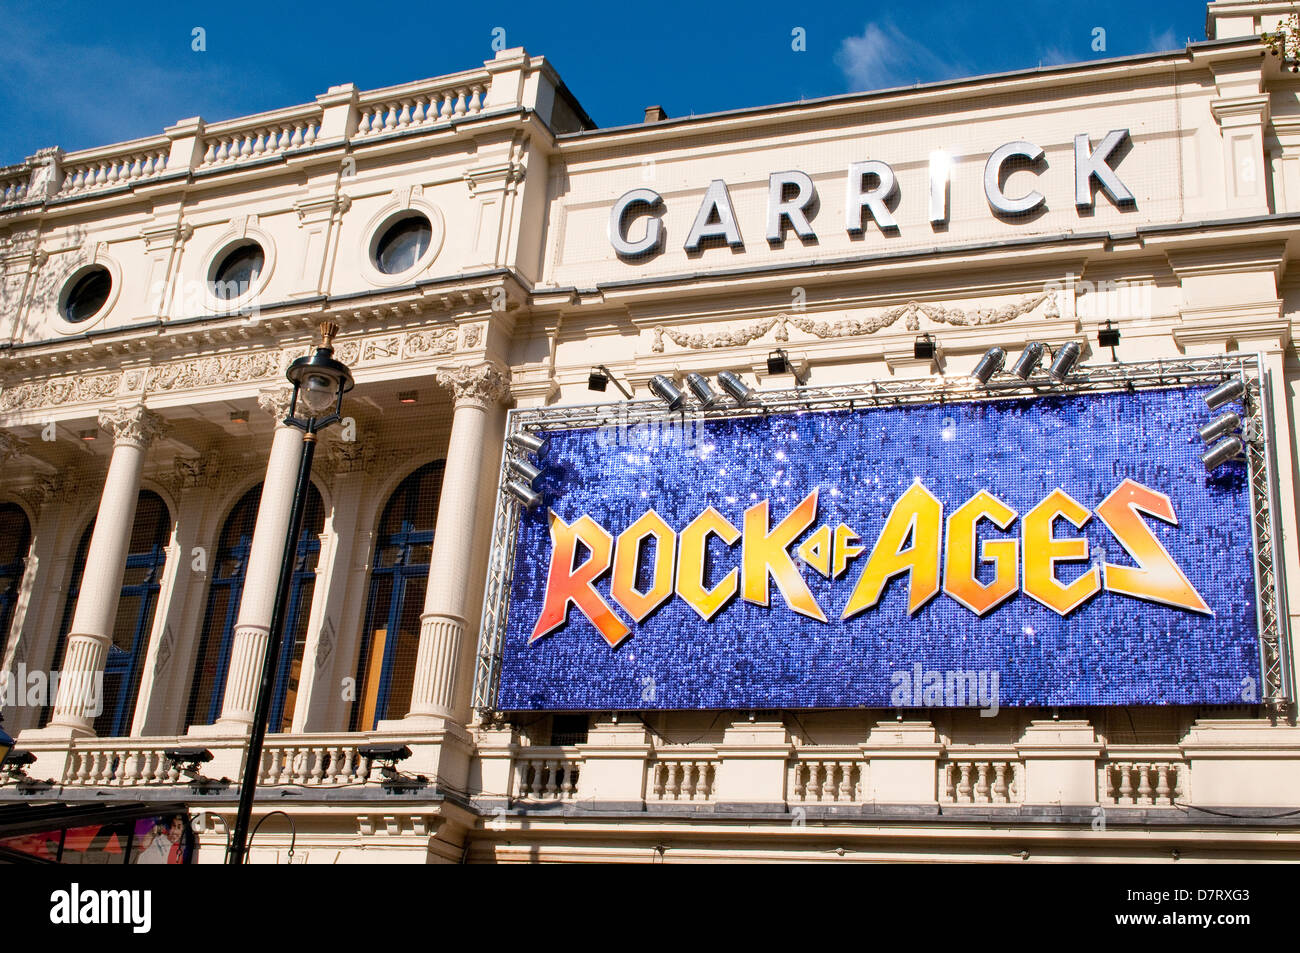 Garrick Theatre in Charing Cross Road, showing Rock of Ages, London, UK - Stock Image